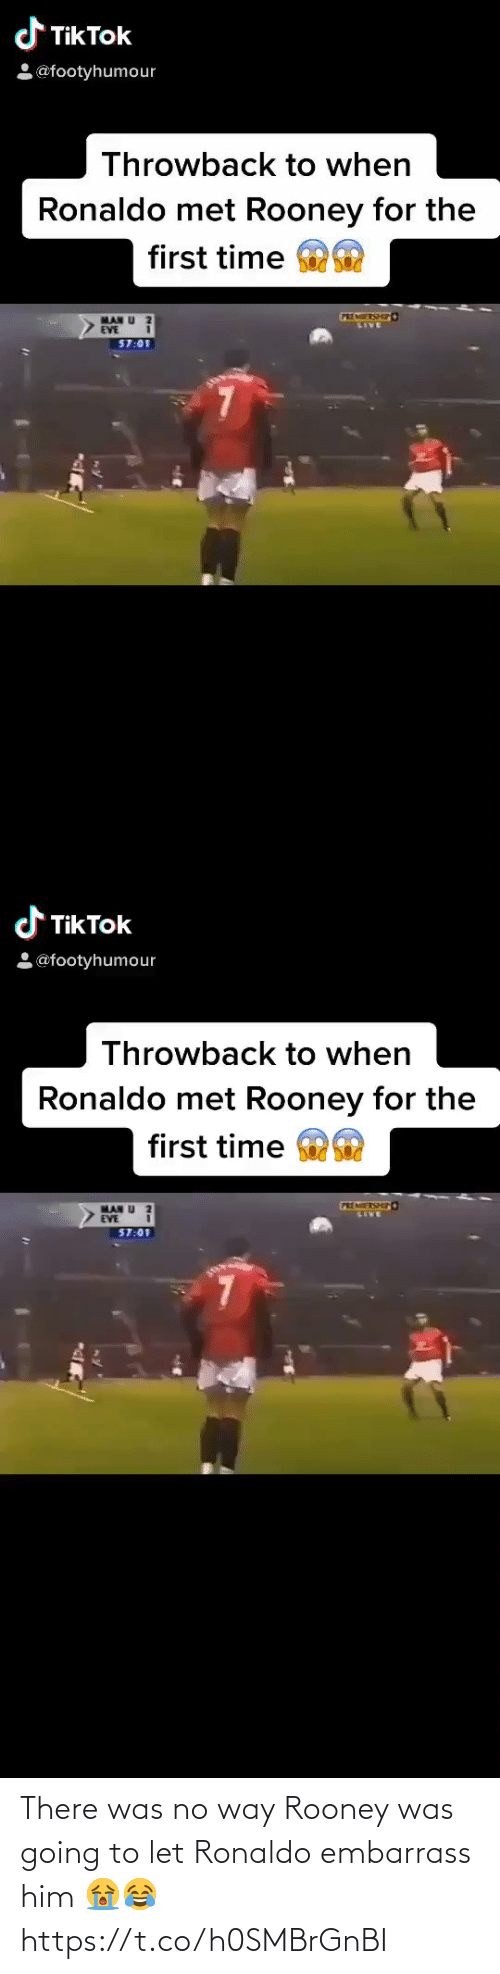 soccer: There was no way Rooney was going to let Ronaldo embarrass him 😭😂 https://t.co/h0SMBrGnBI